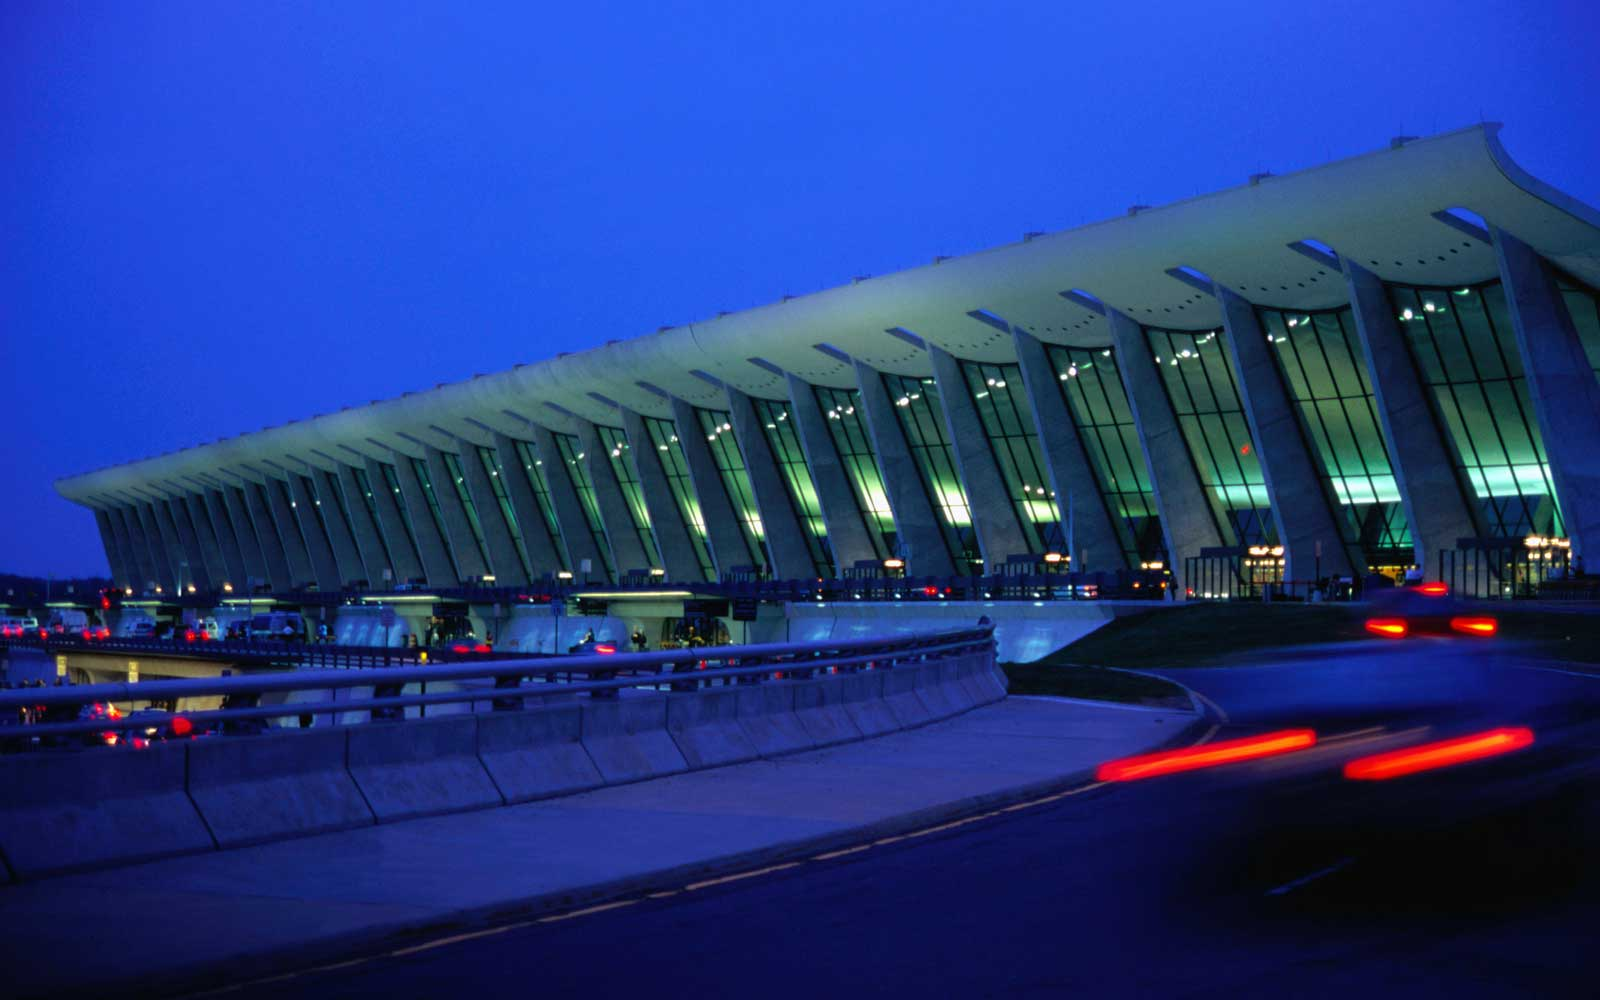 Dulles International Airport, Washington, DC